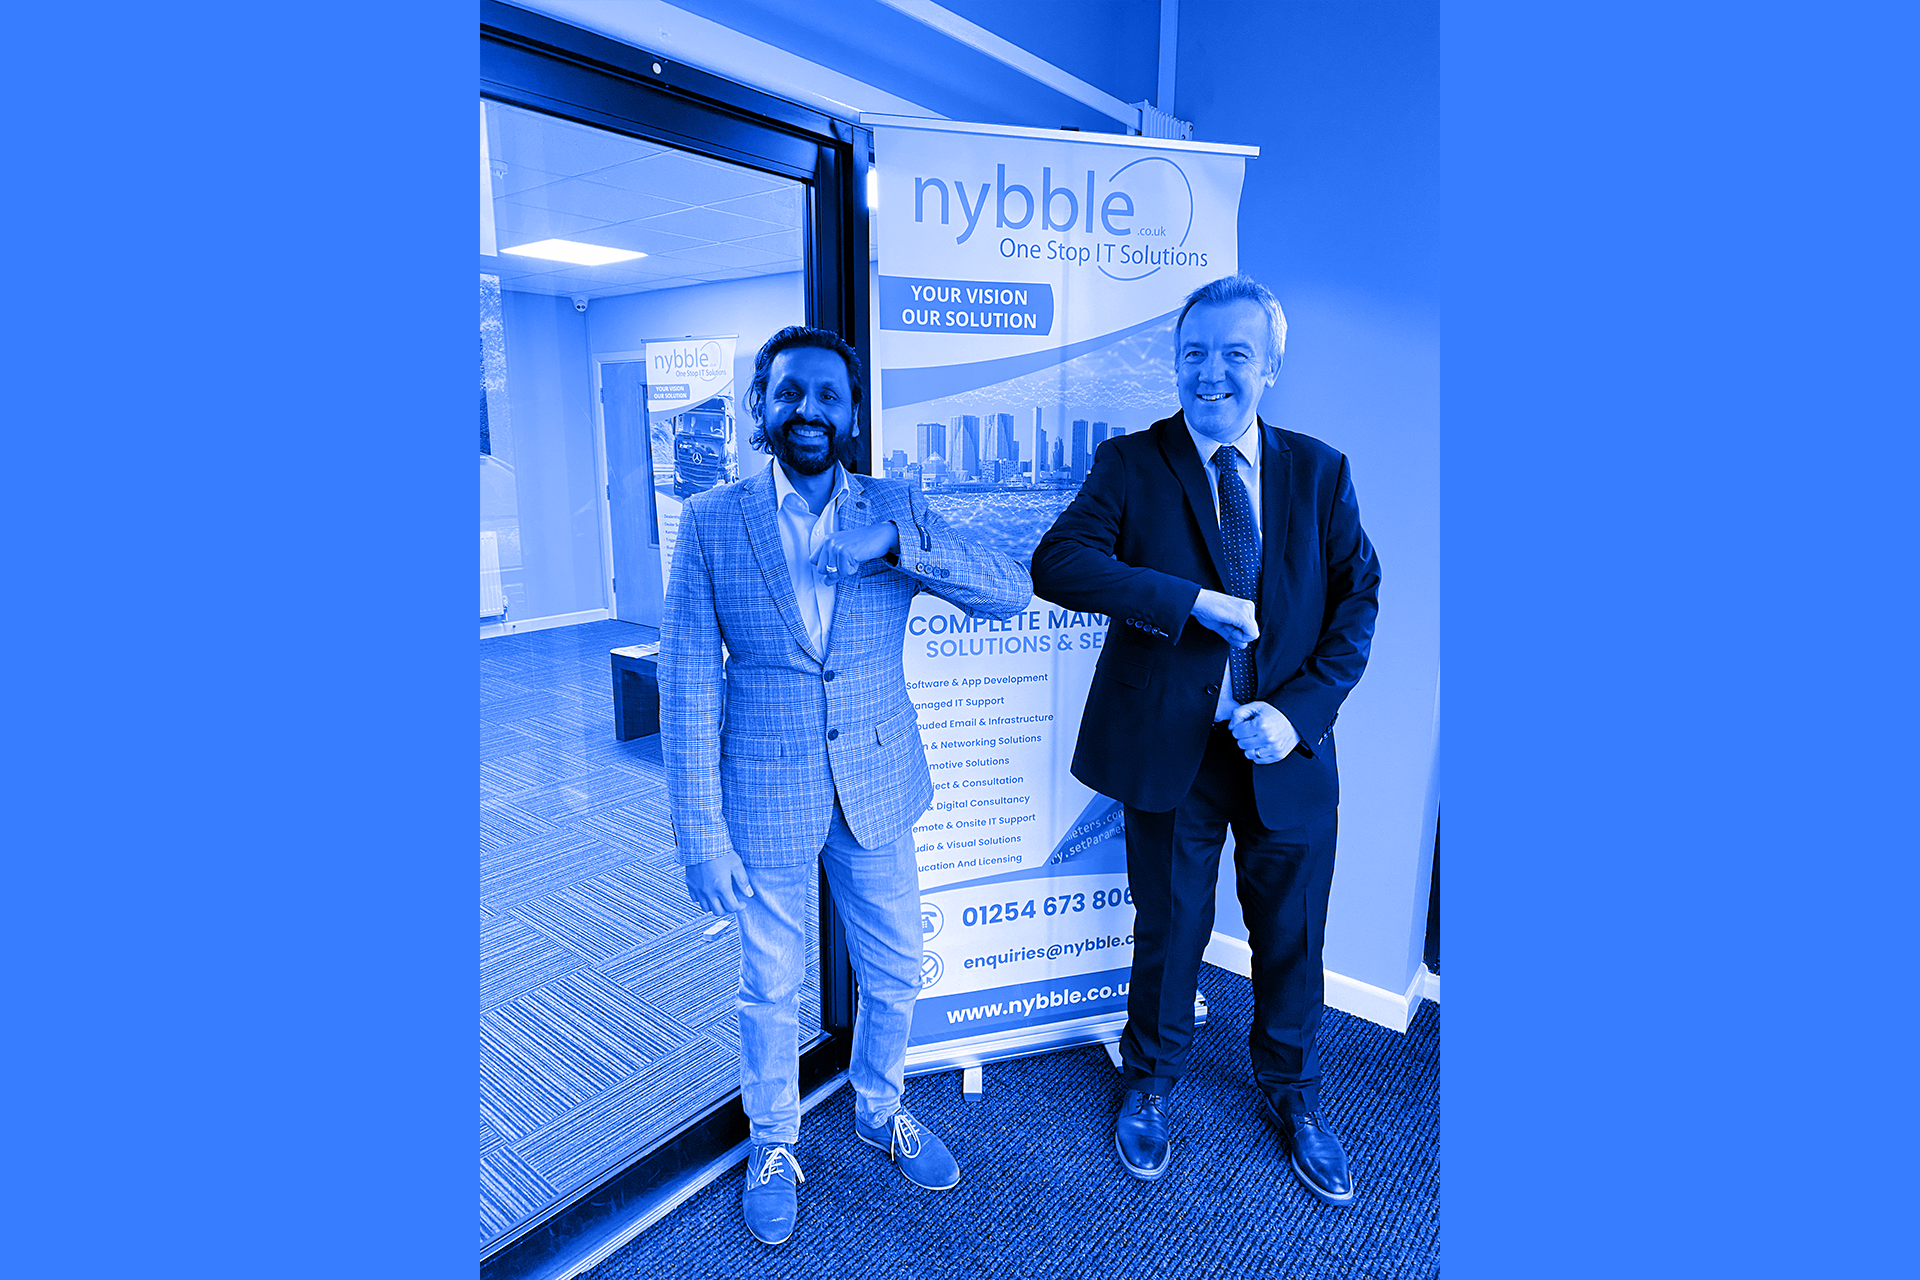 Continued Growth as LOCAL IT Company Nybble.co.uk Bucks the Trend Despite Lockdown